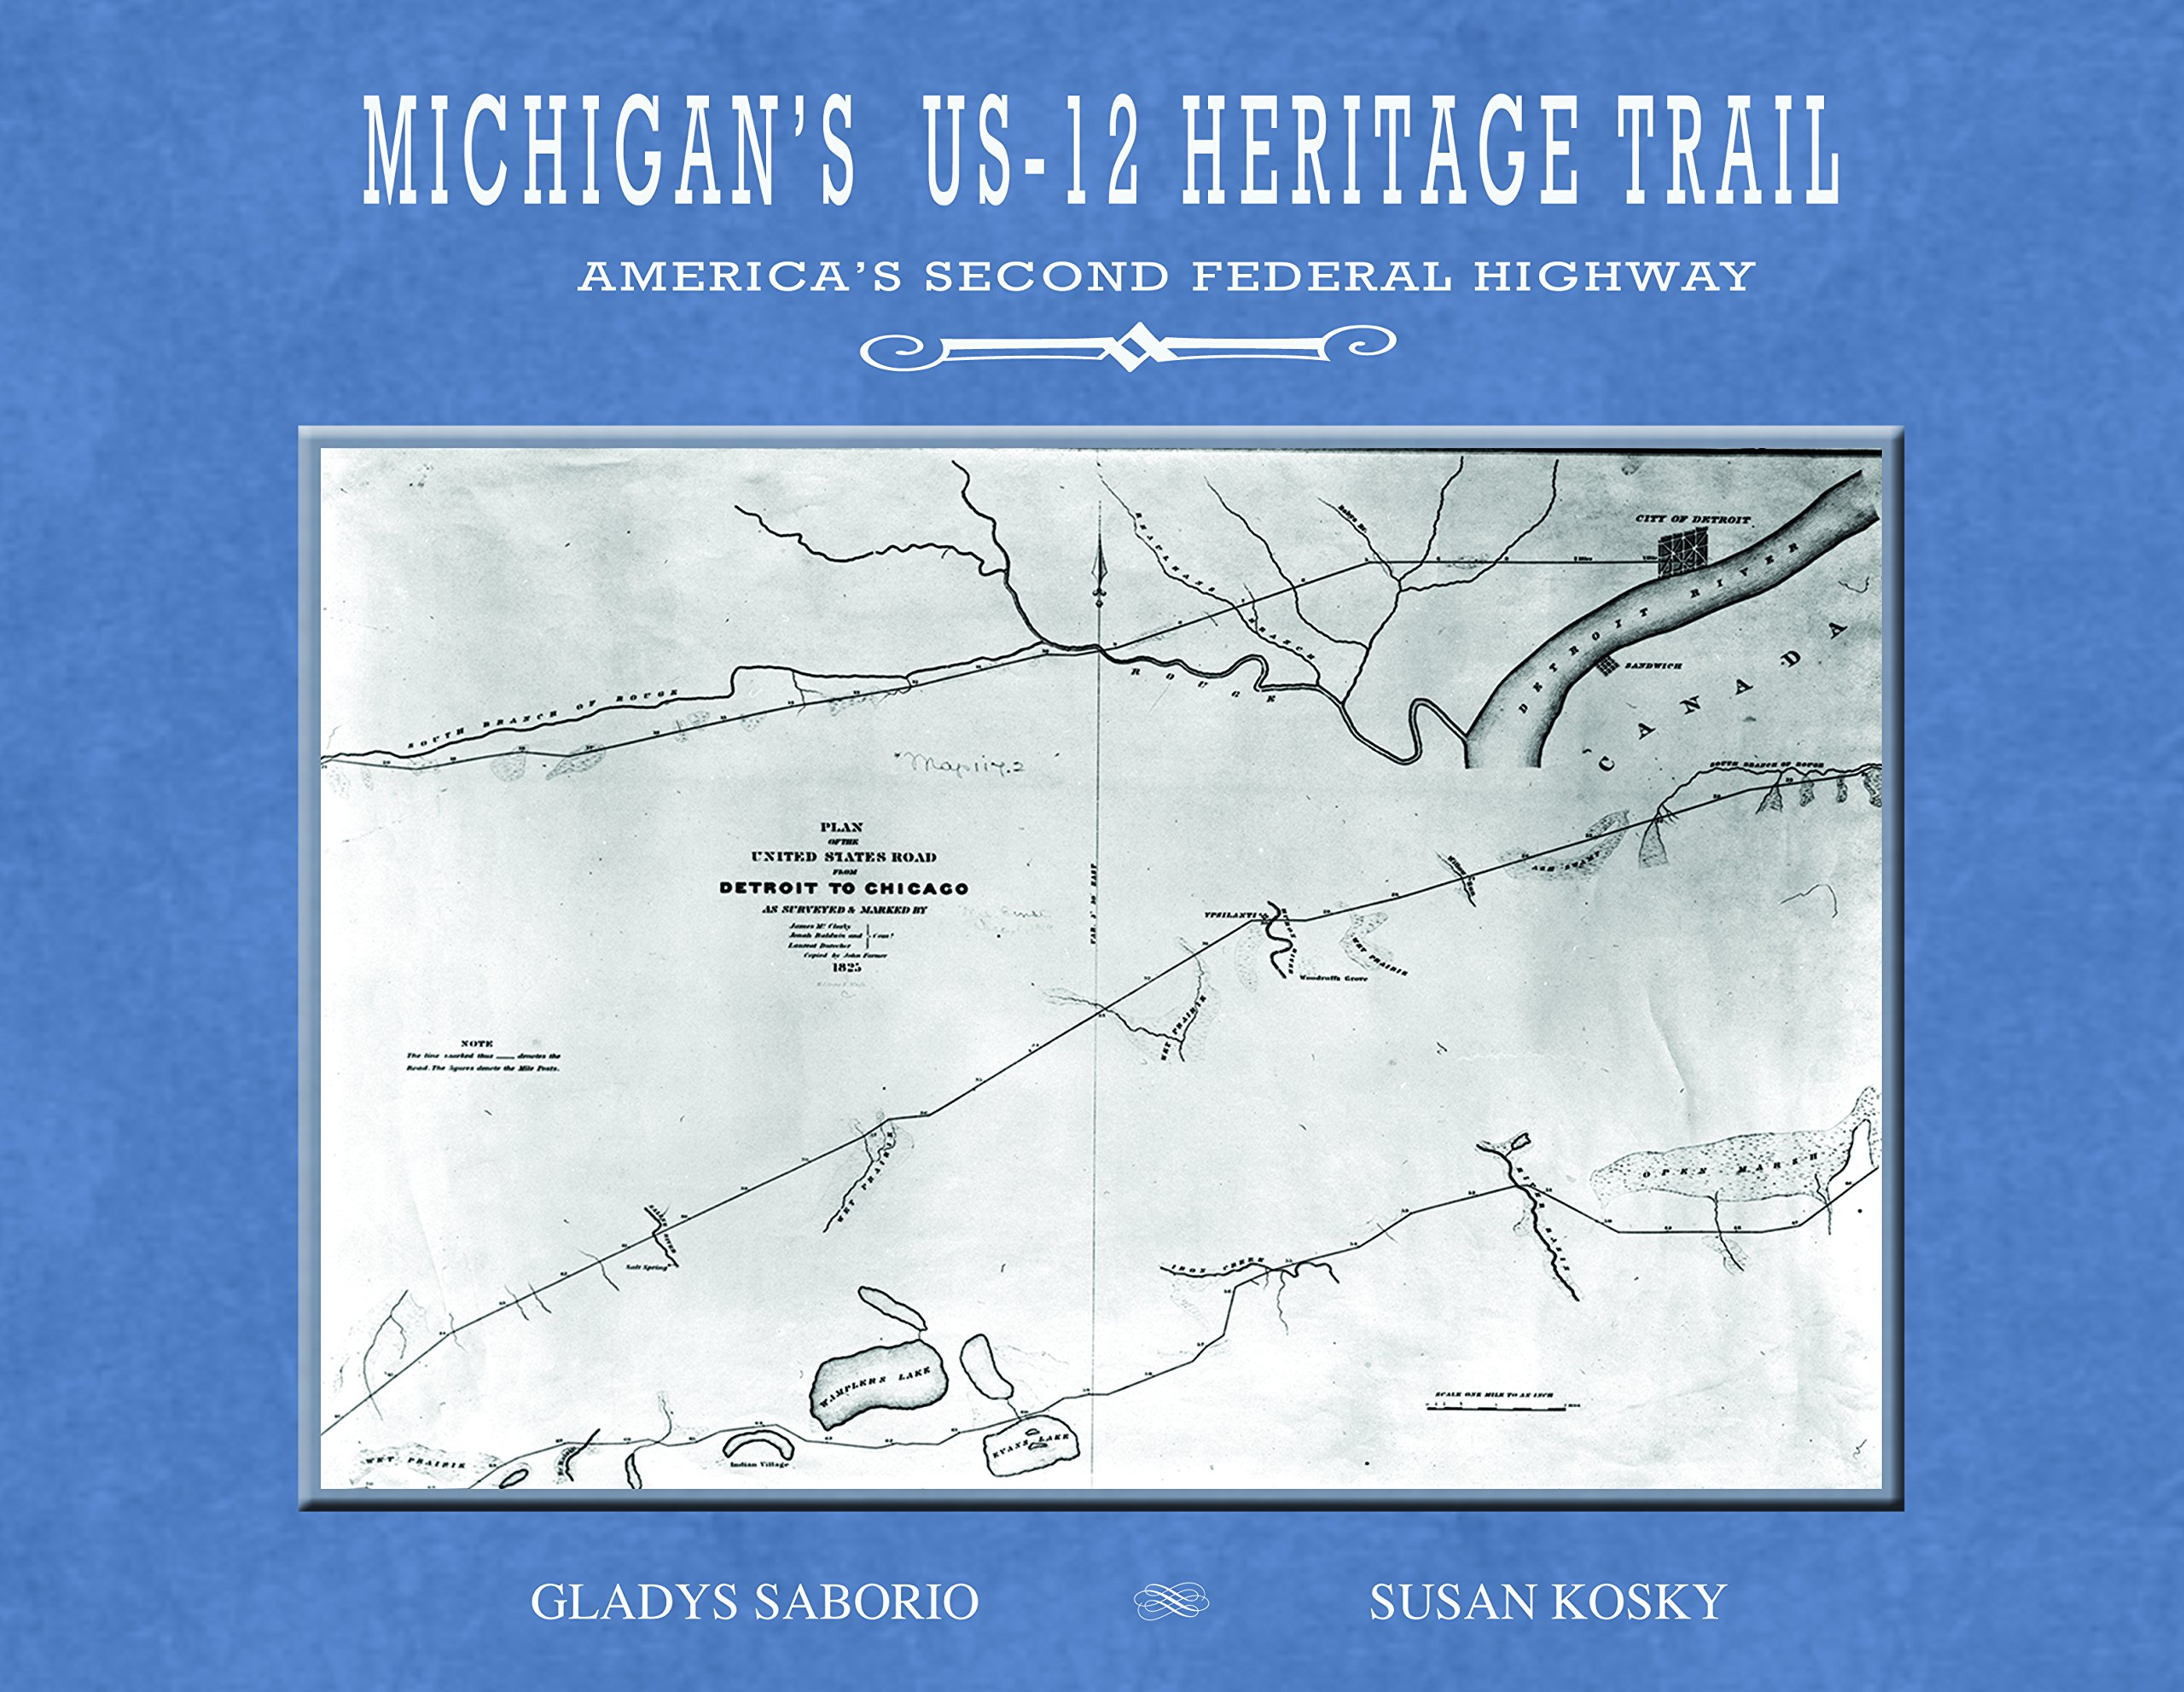 Us 12 Michigan Map.Michigan S Us 12 Heritage Trail America S Second Federal Highway